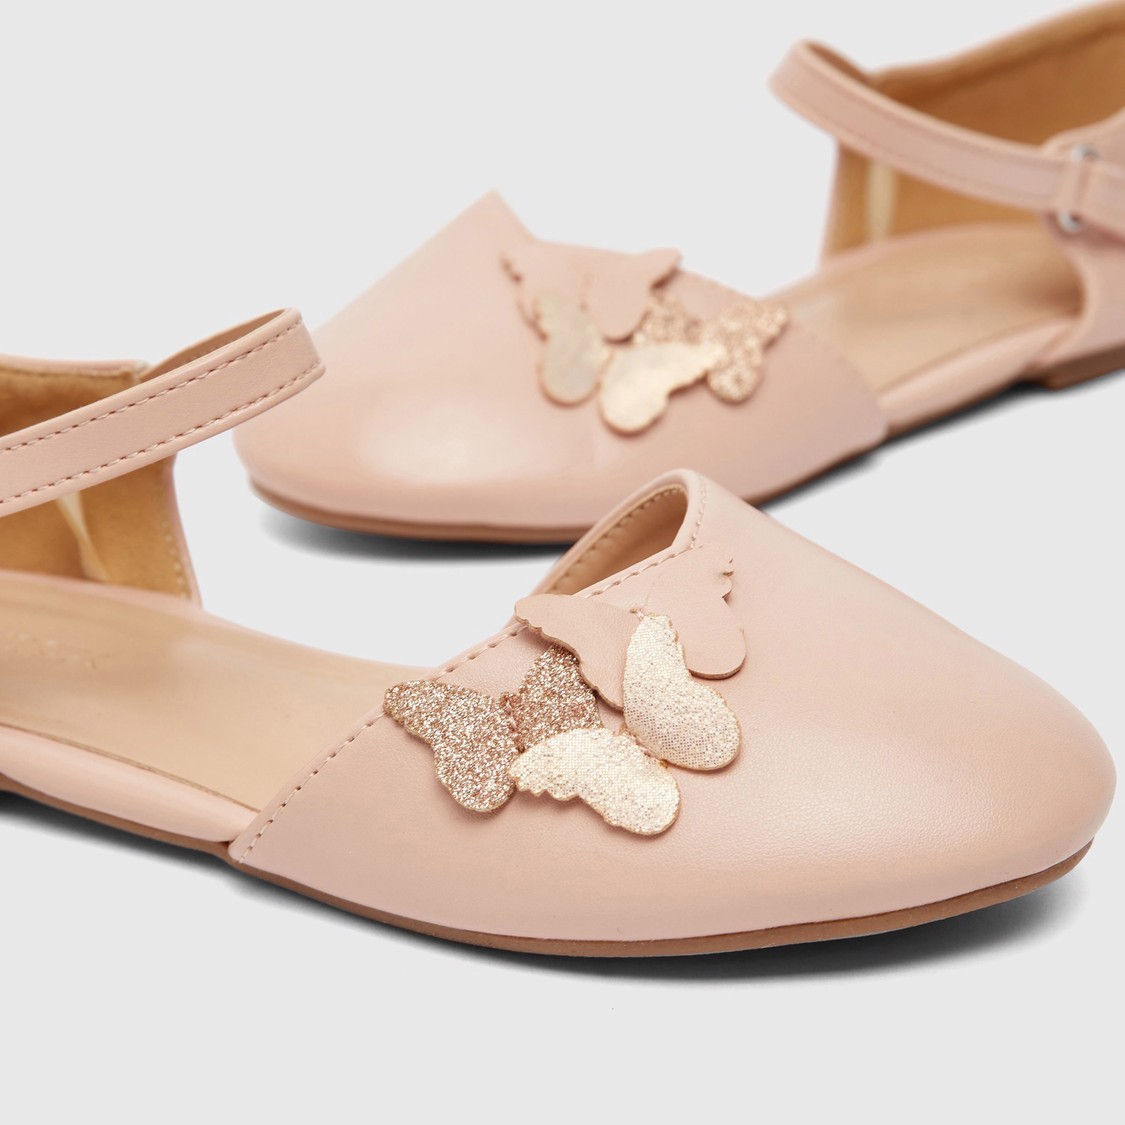 Butterfly Applique Detailed Shoes with Hook and Loop Closure